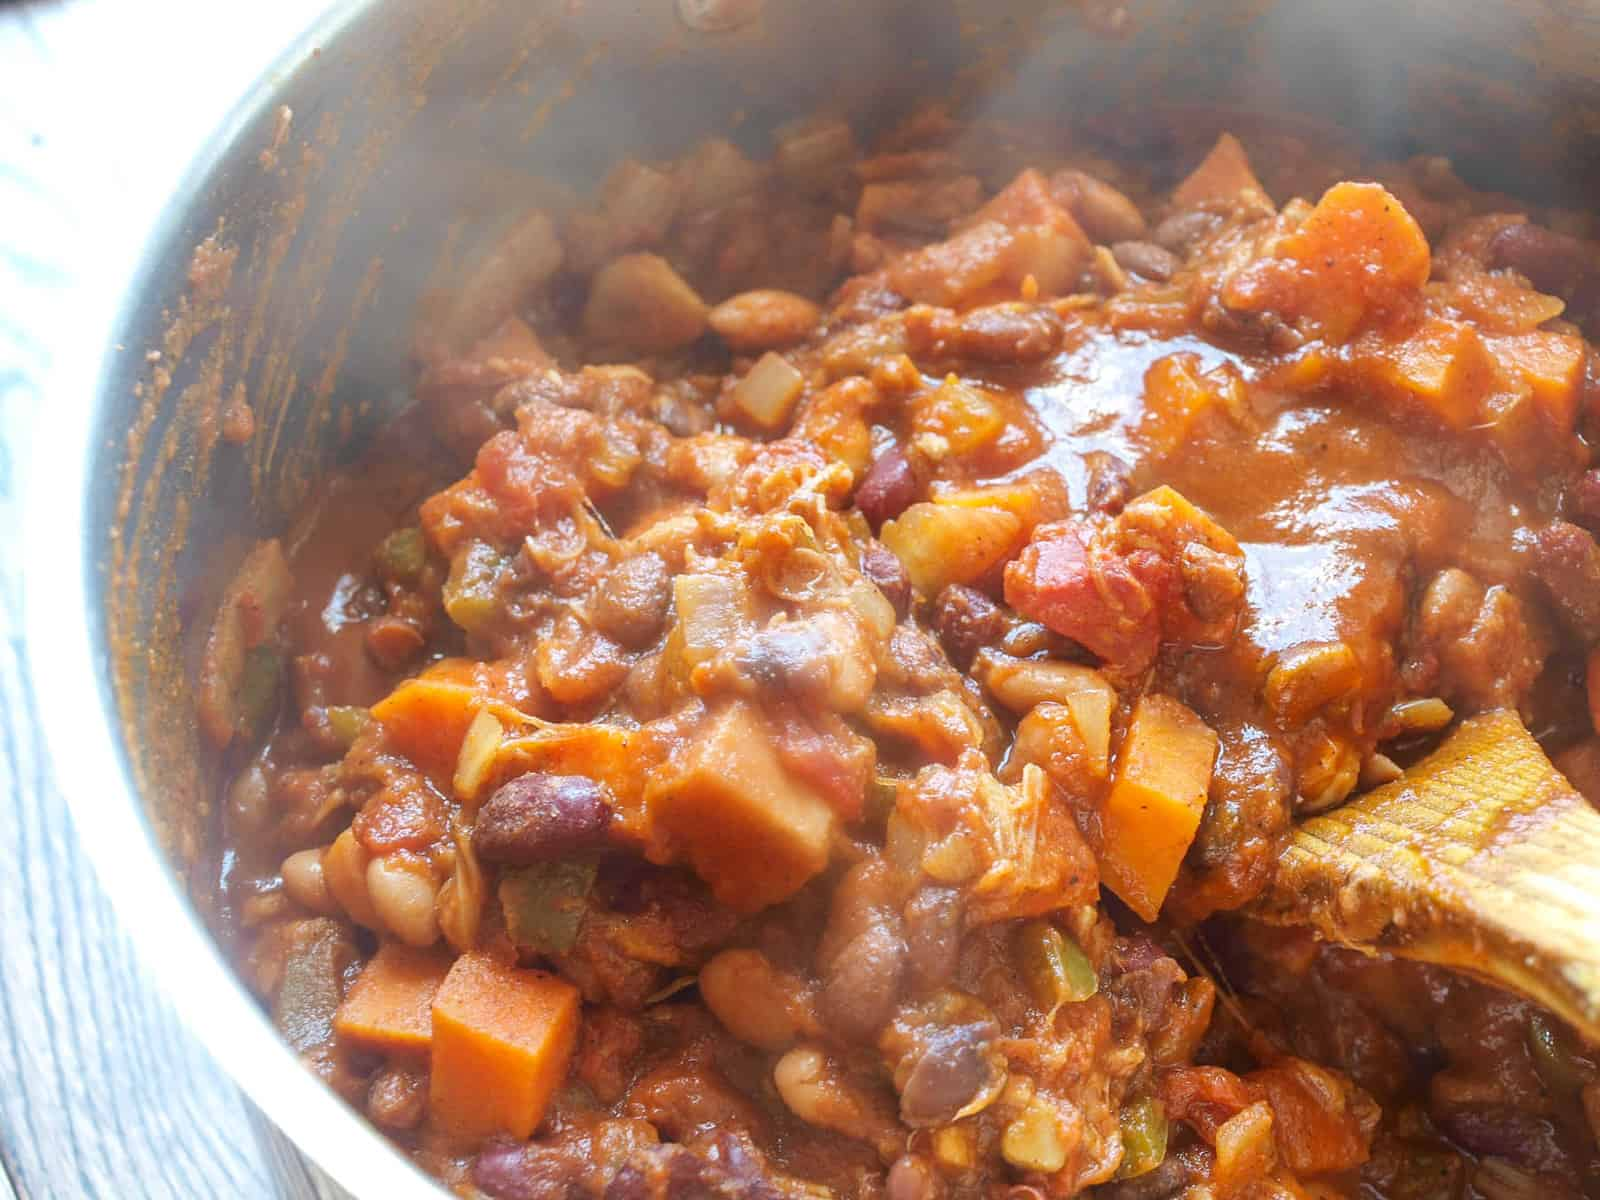 Steam coming off of an up-close shot of jackfruit vegan chili.